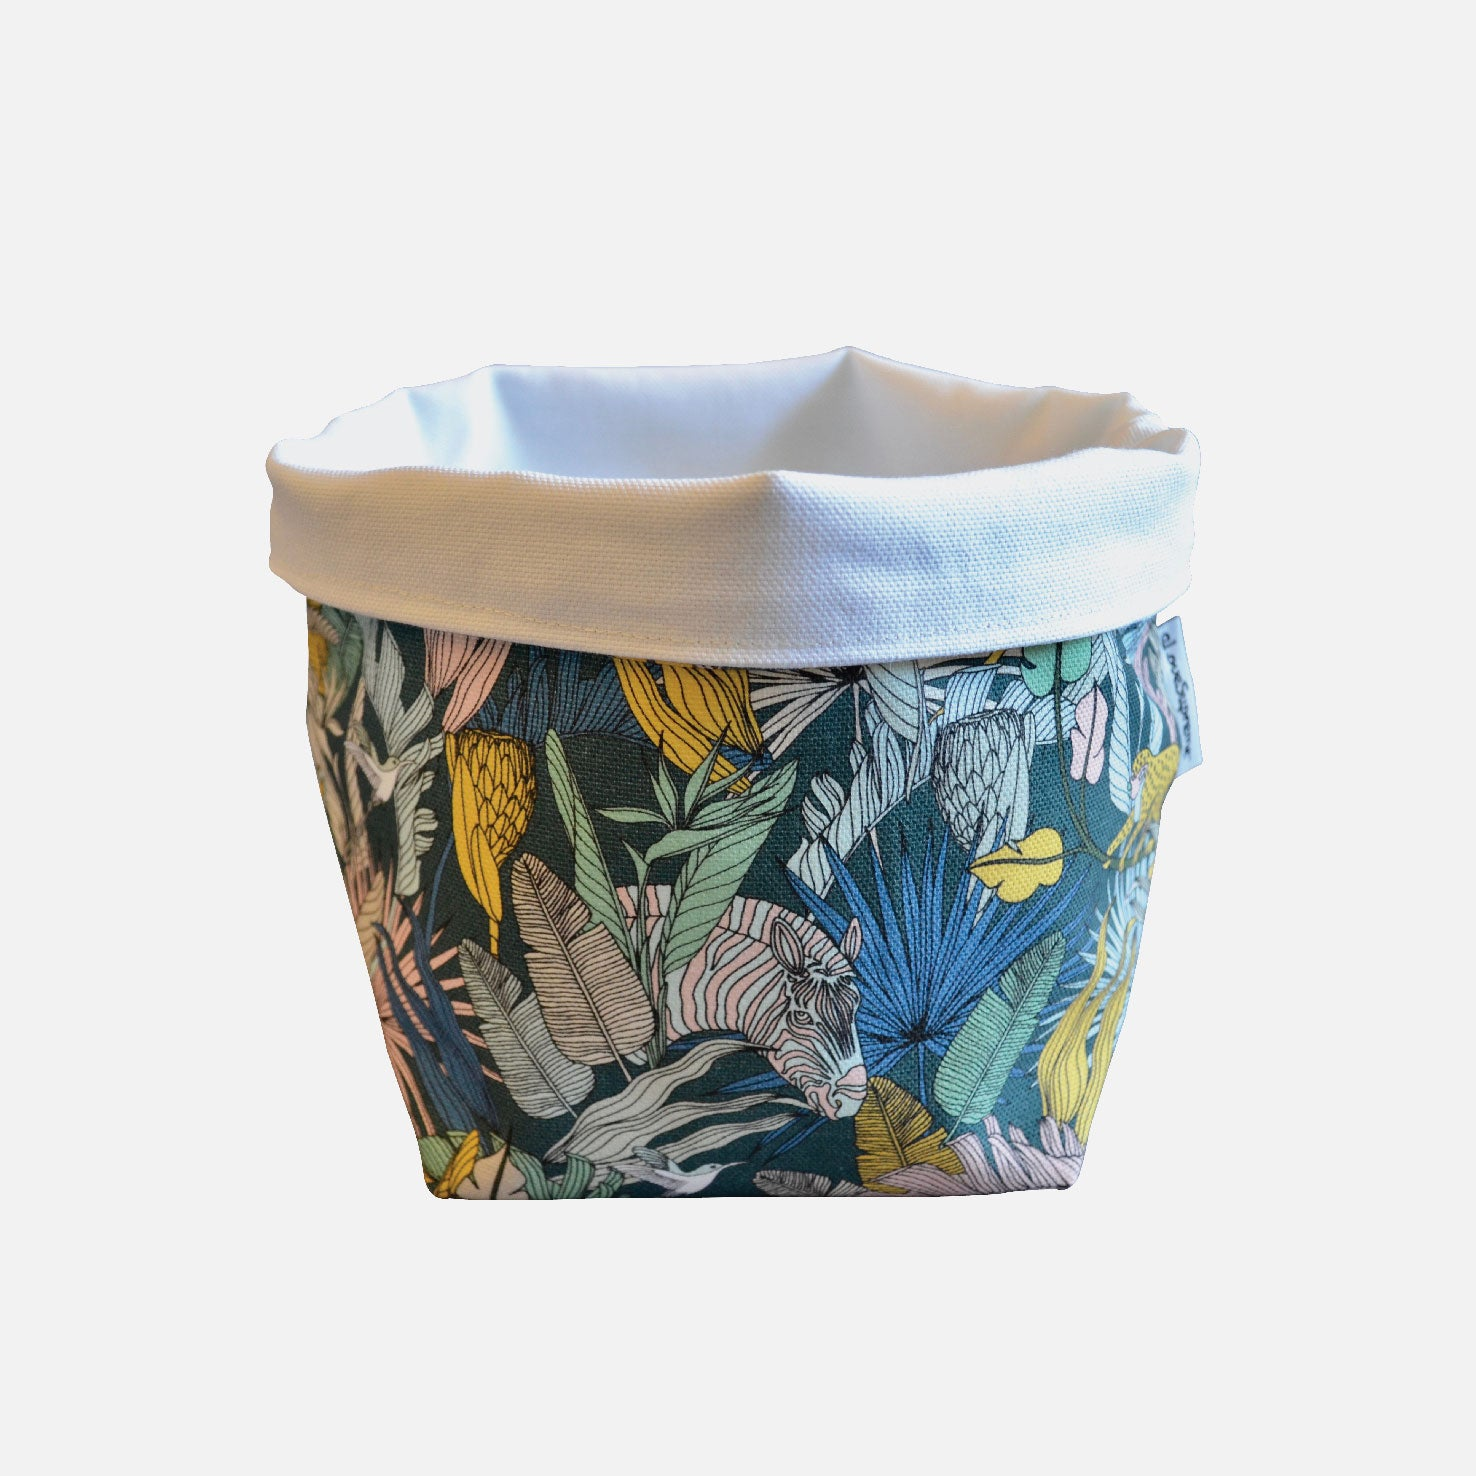 Medium Fabric Bucket - Wild at Heart Gunmetal Cool